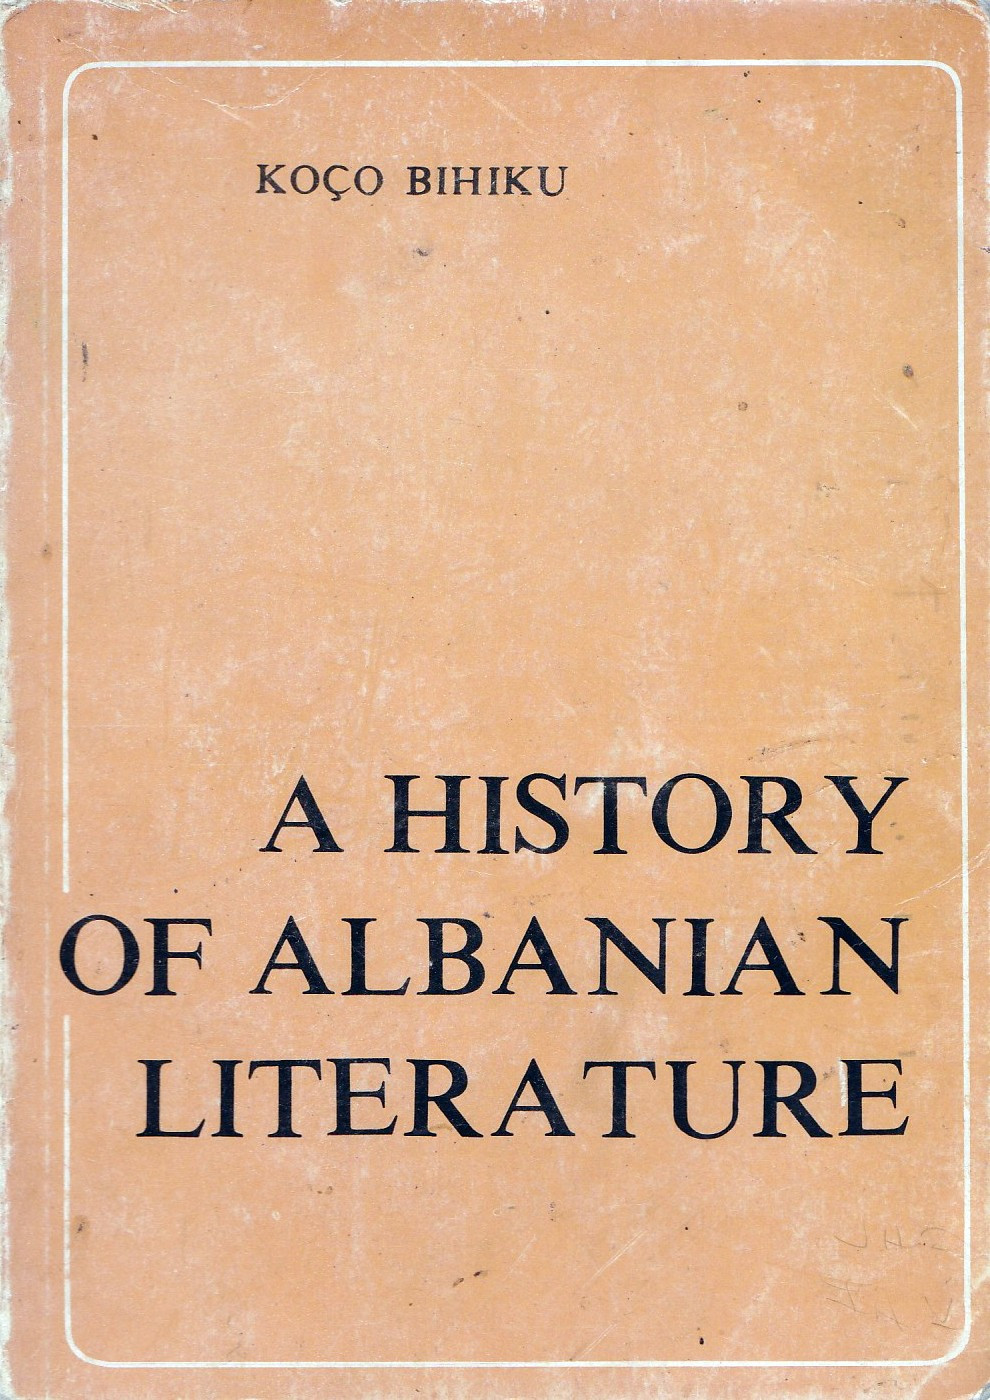 A history of albanian literature